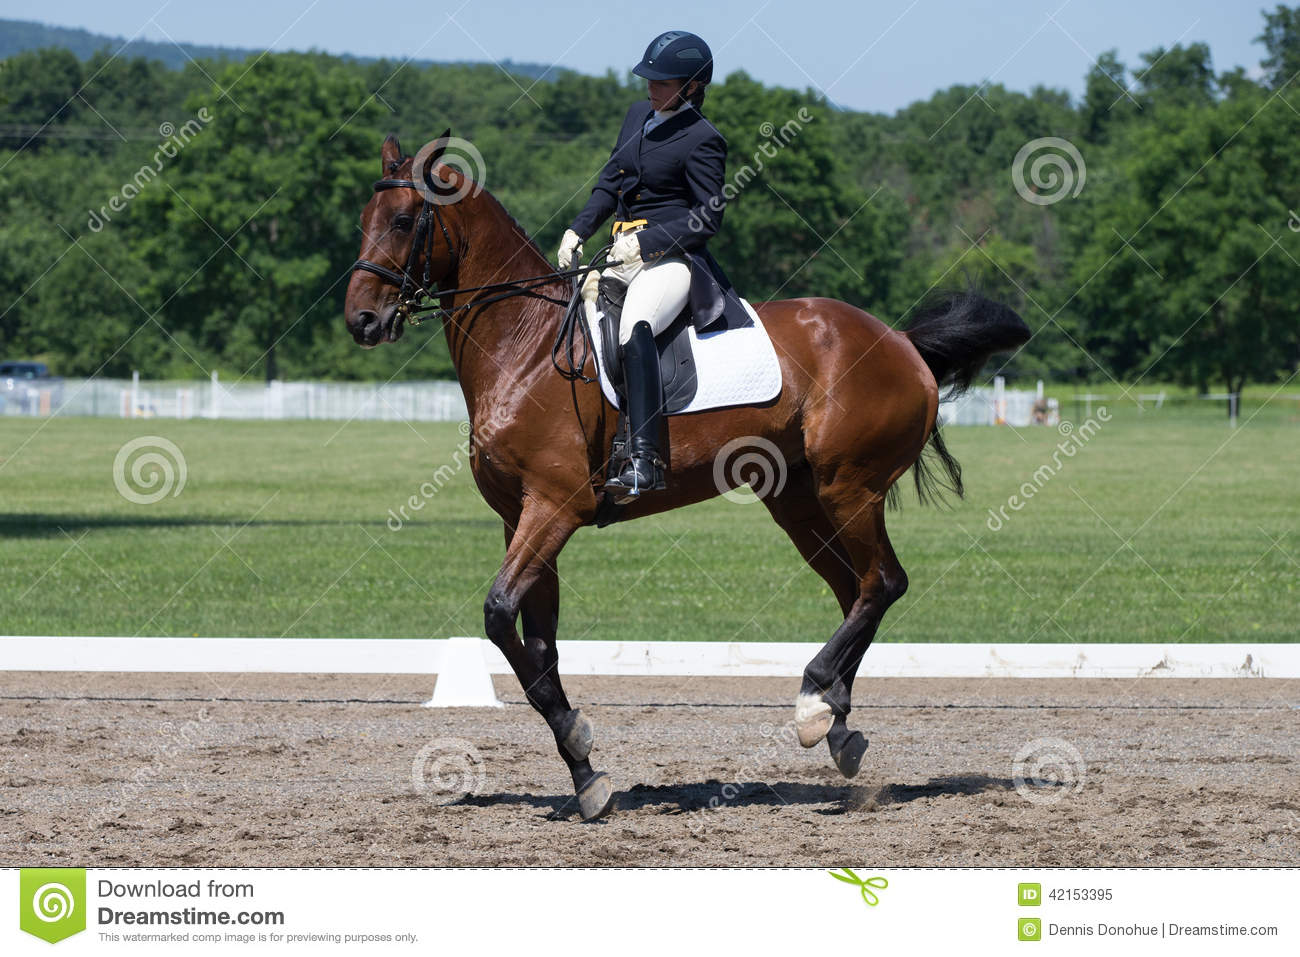 Doma FEI Prix St Georges